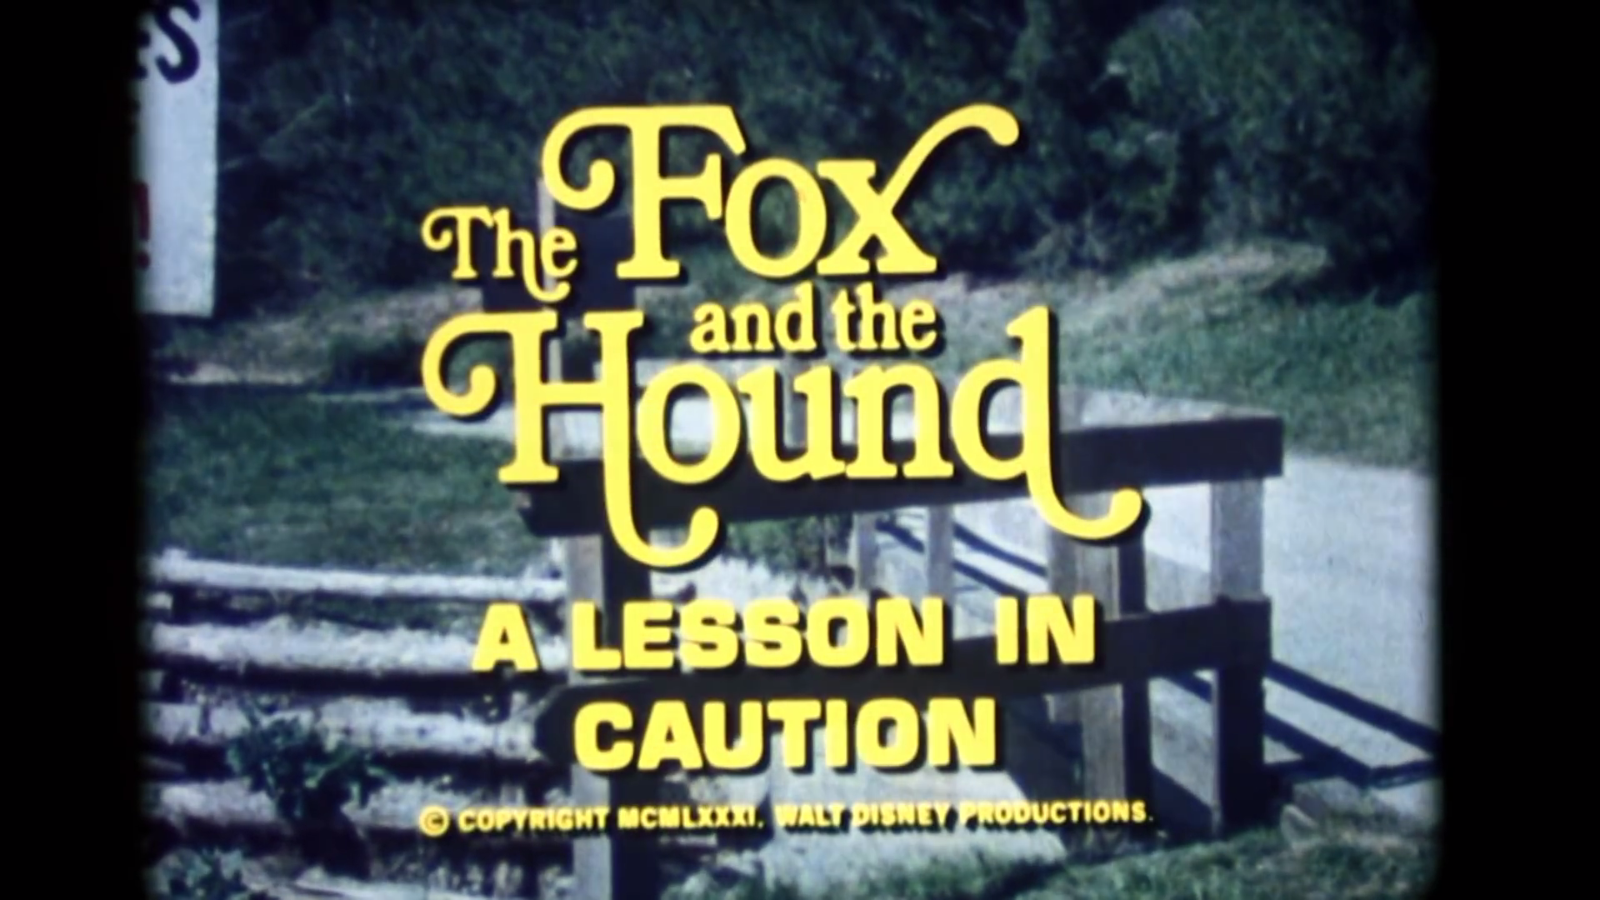 The Fox and the Hound: A Lesson in Being Careful